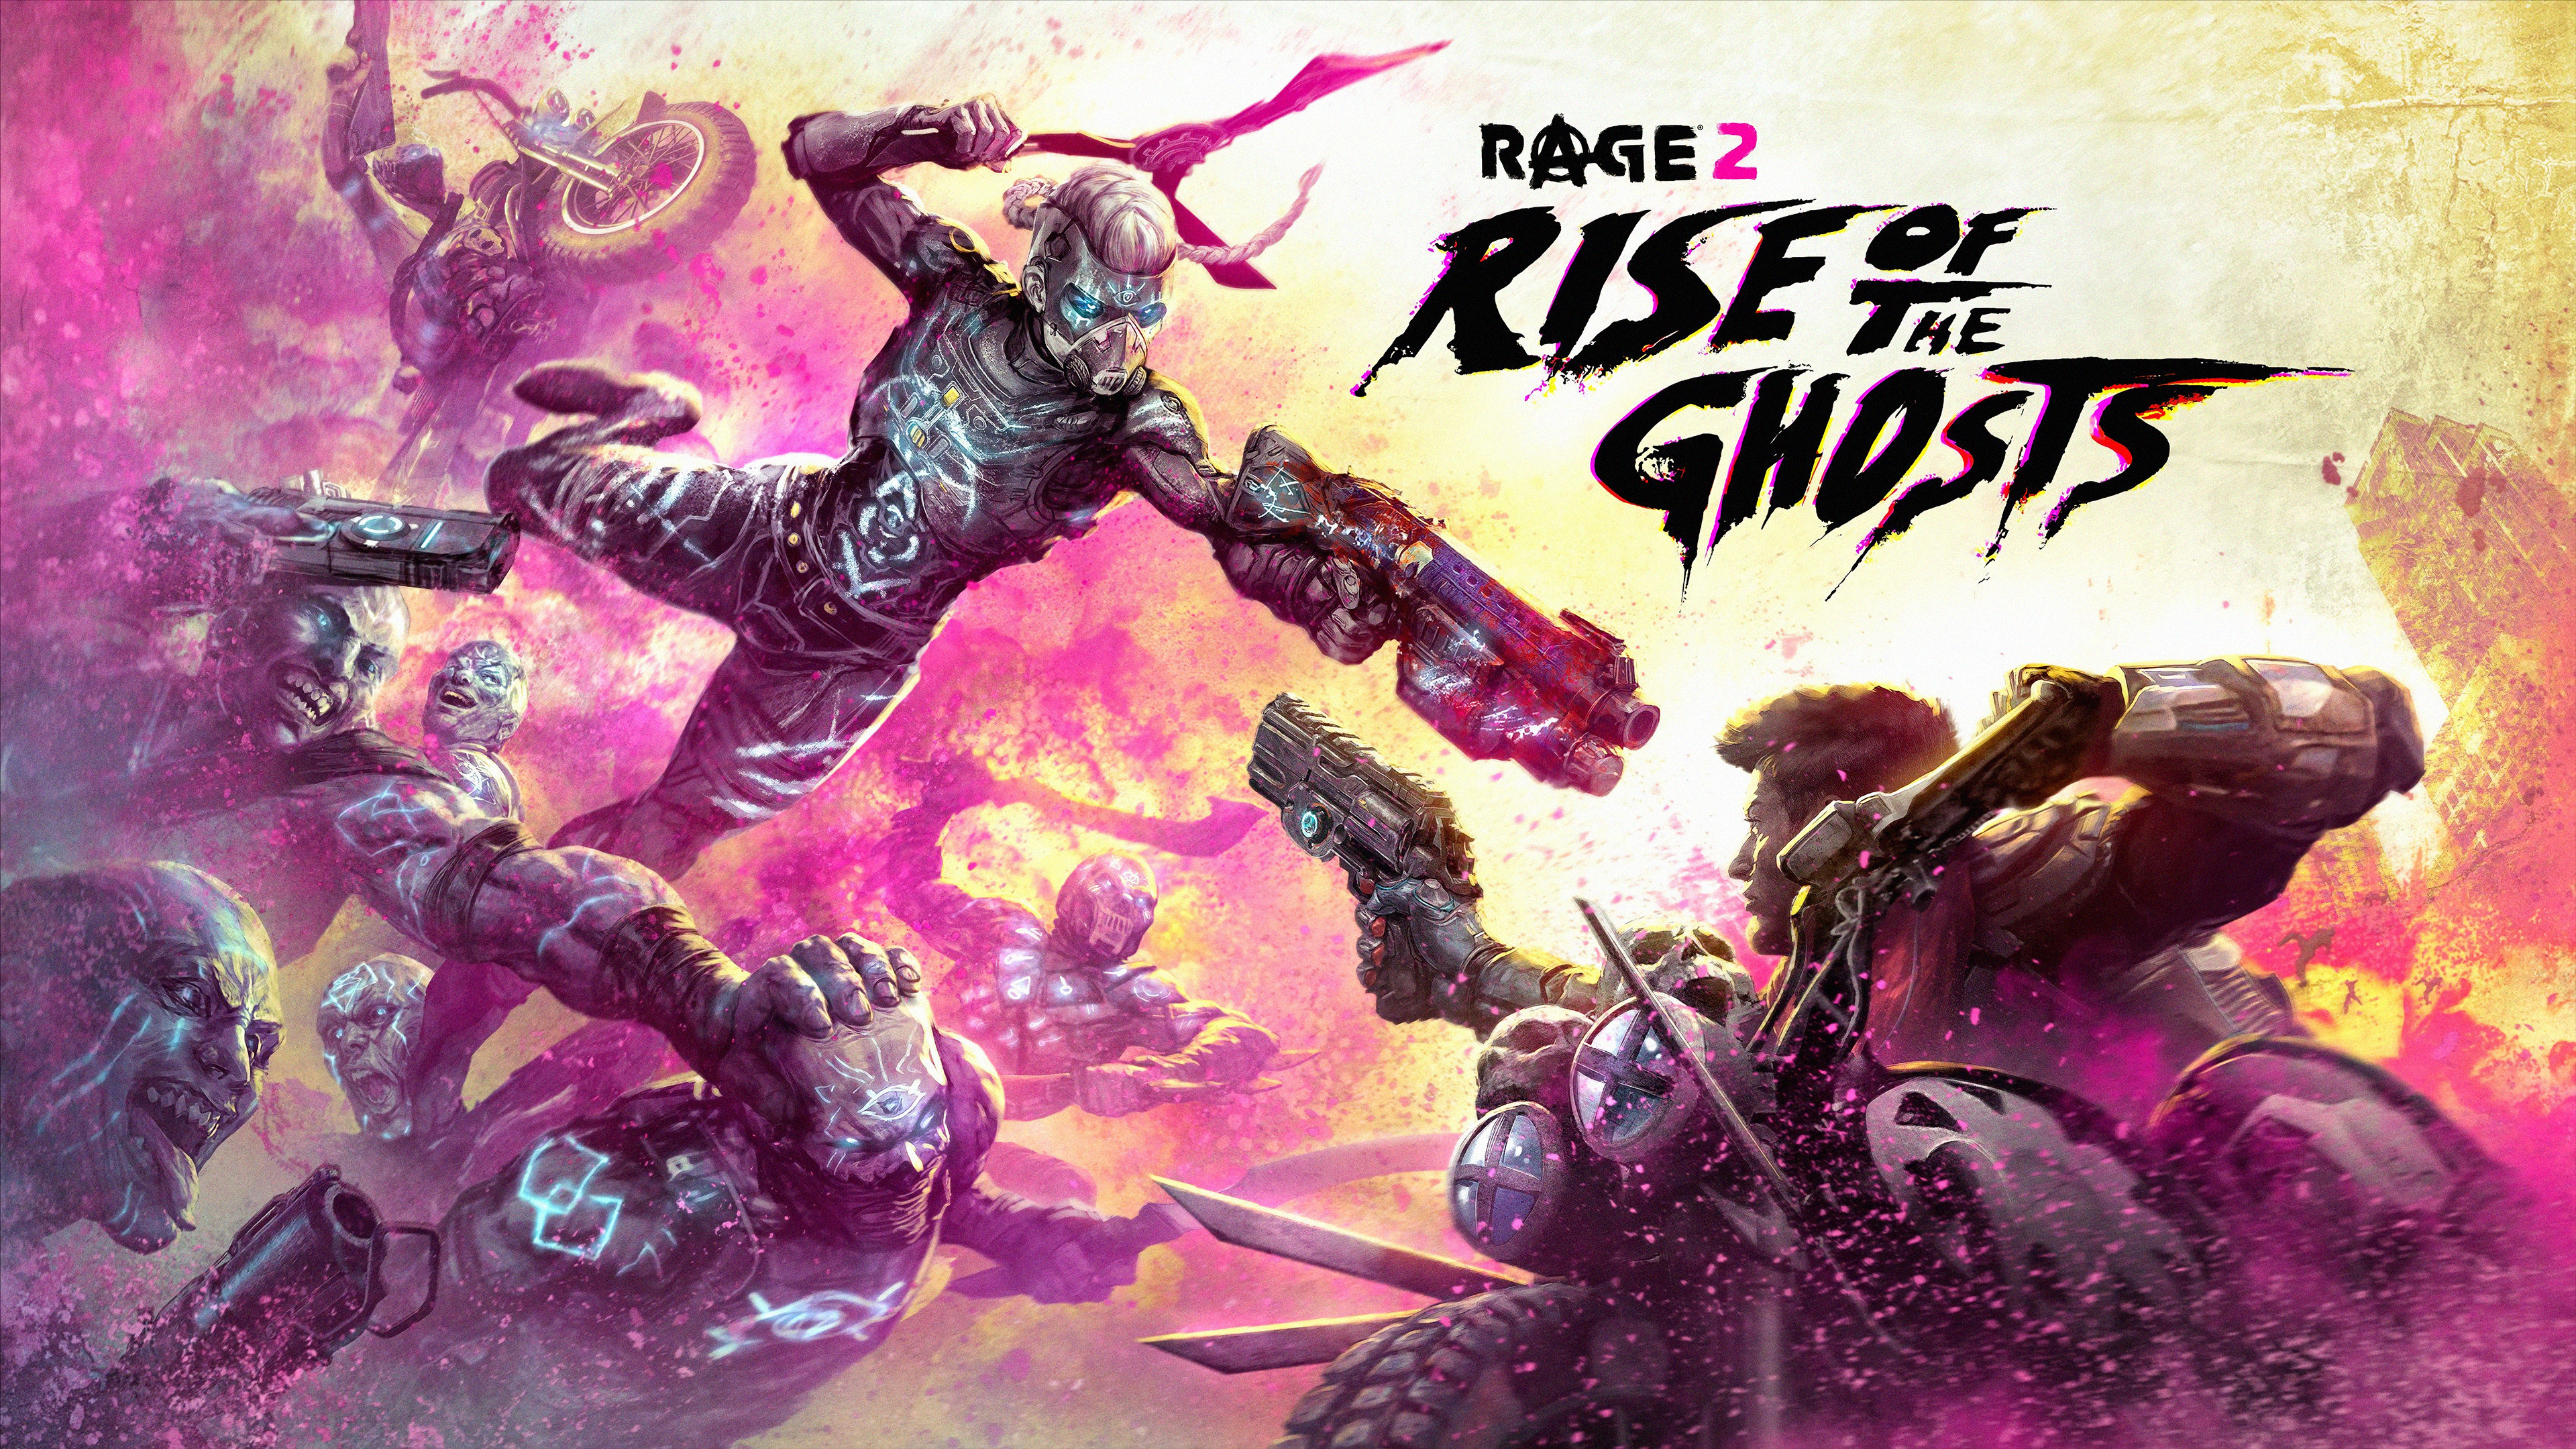 rage 2 rise of the ghosts dlc 2019 1570393041 - Rage 2 Rise Of The Ghosts Dlc 2019 - rage 2 wallpapers, hd-wallpapers, games wallpapers, 4k-wallpapers, 2019 games wallpapers